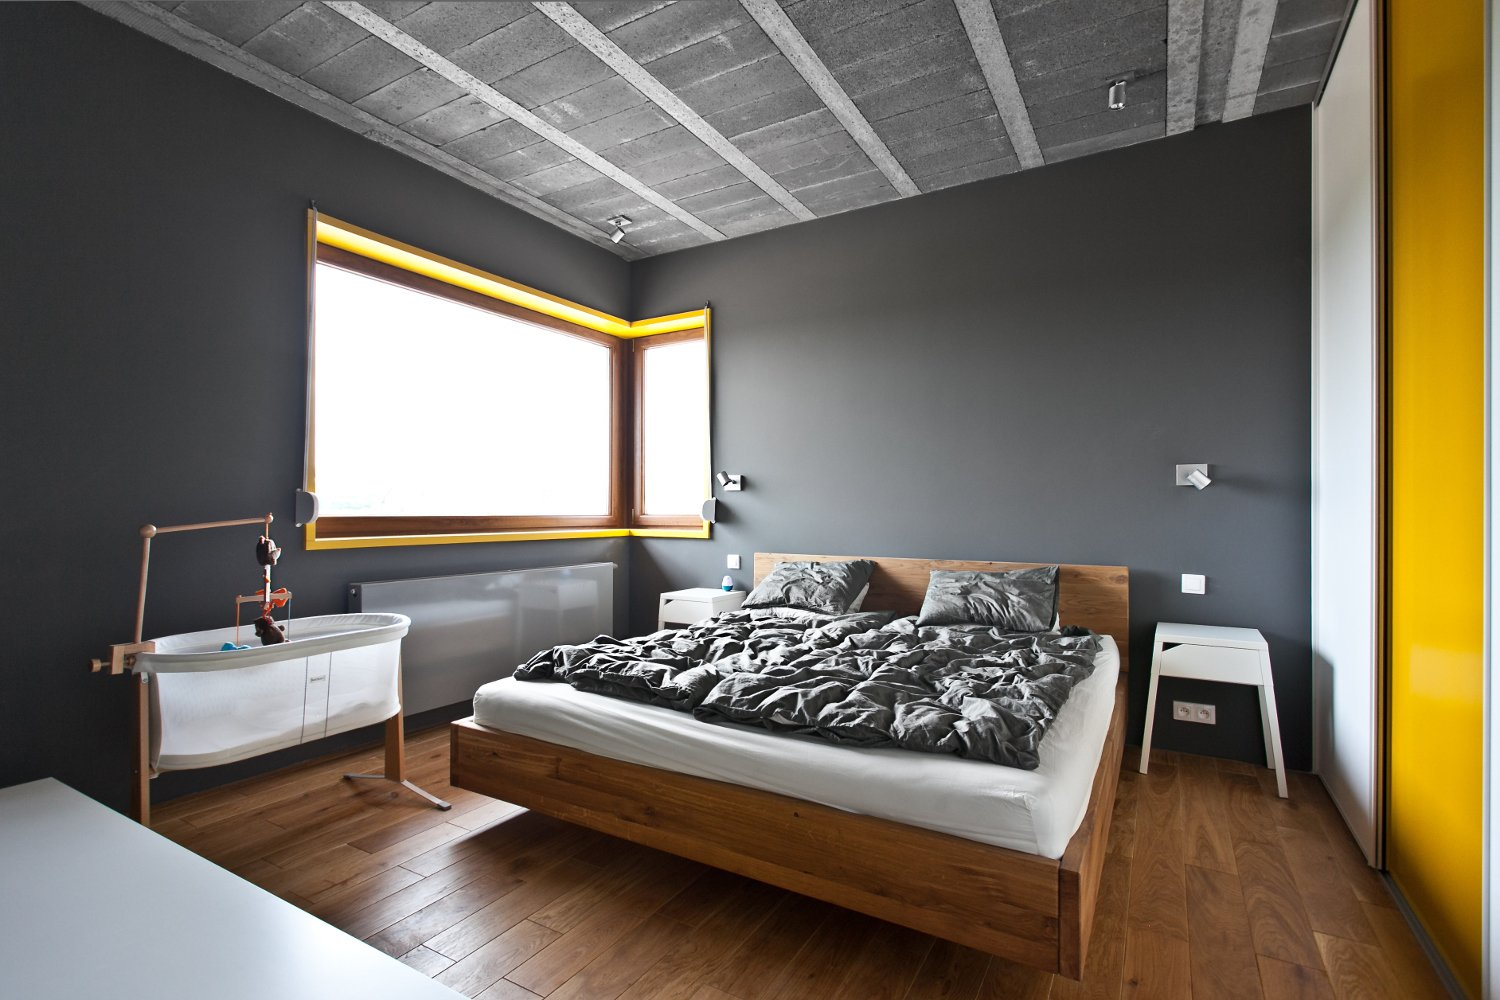 The bedrooms feel like sanctuaries, as they're much darker and enclosed than other spaces in the home.  Bedroom by Dane Cupp from A Modern Home Experiments with Exposed Concrete and Sliding Yellow Doors